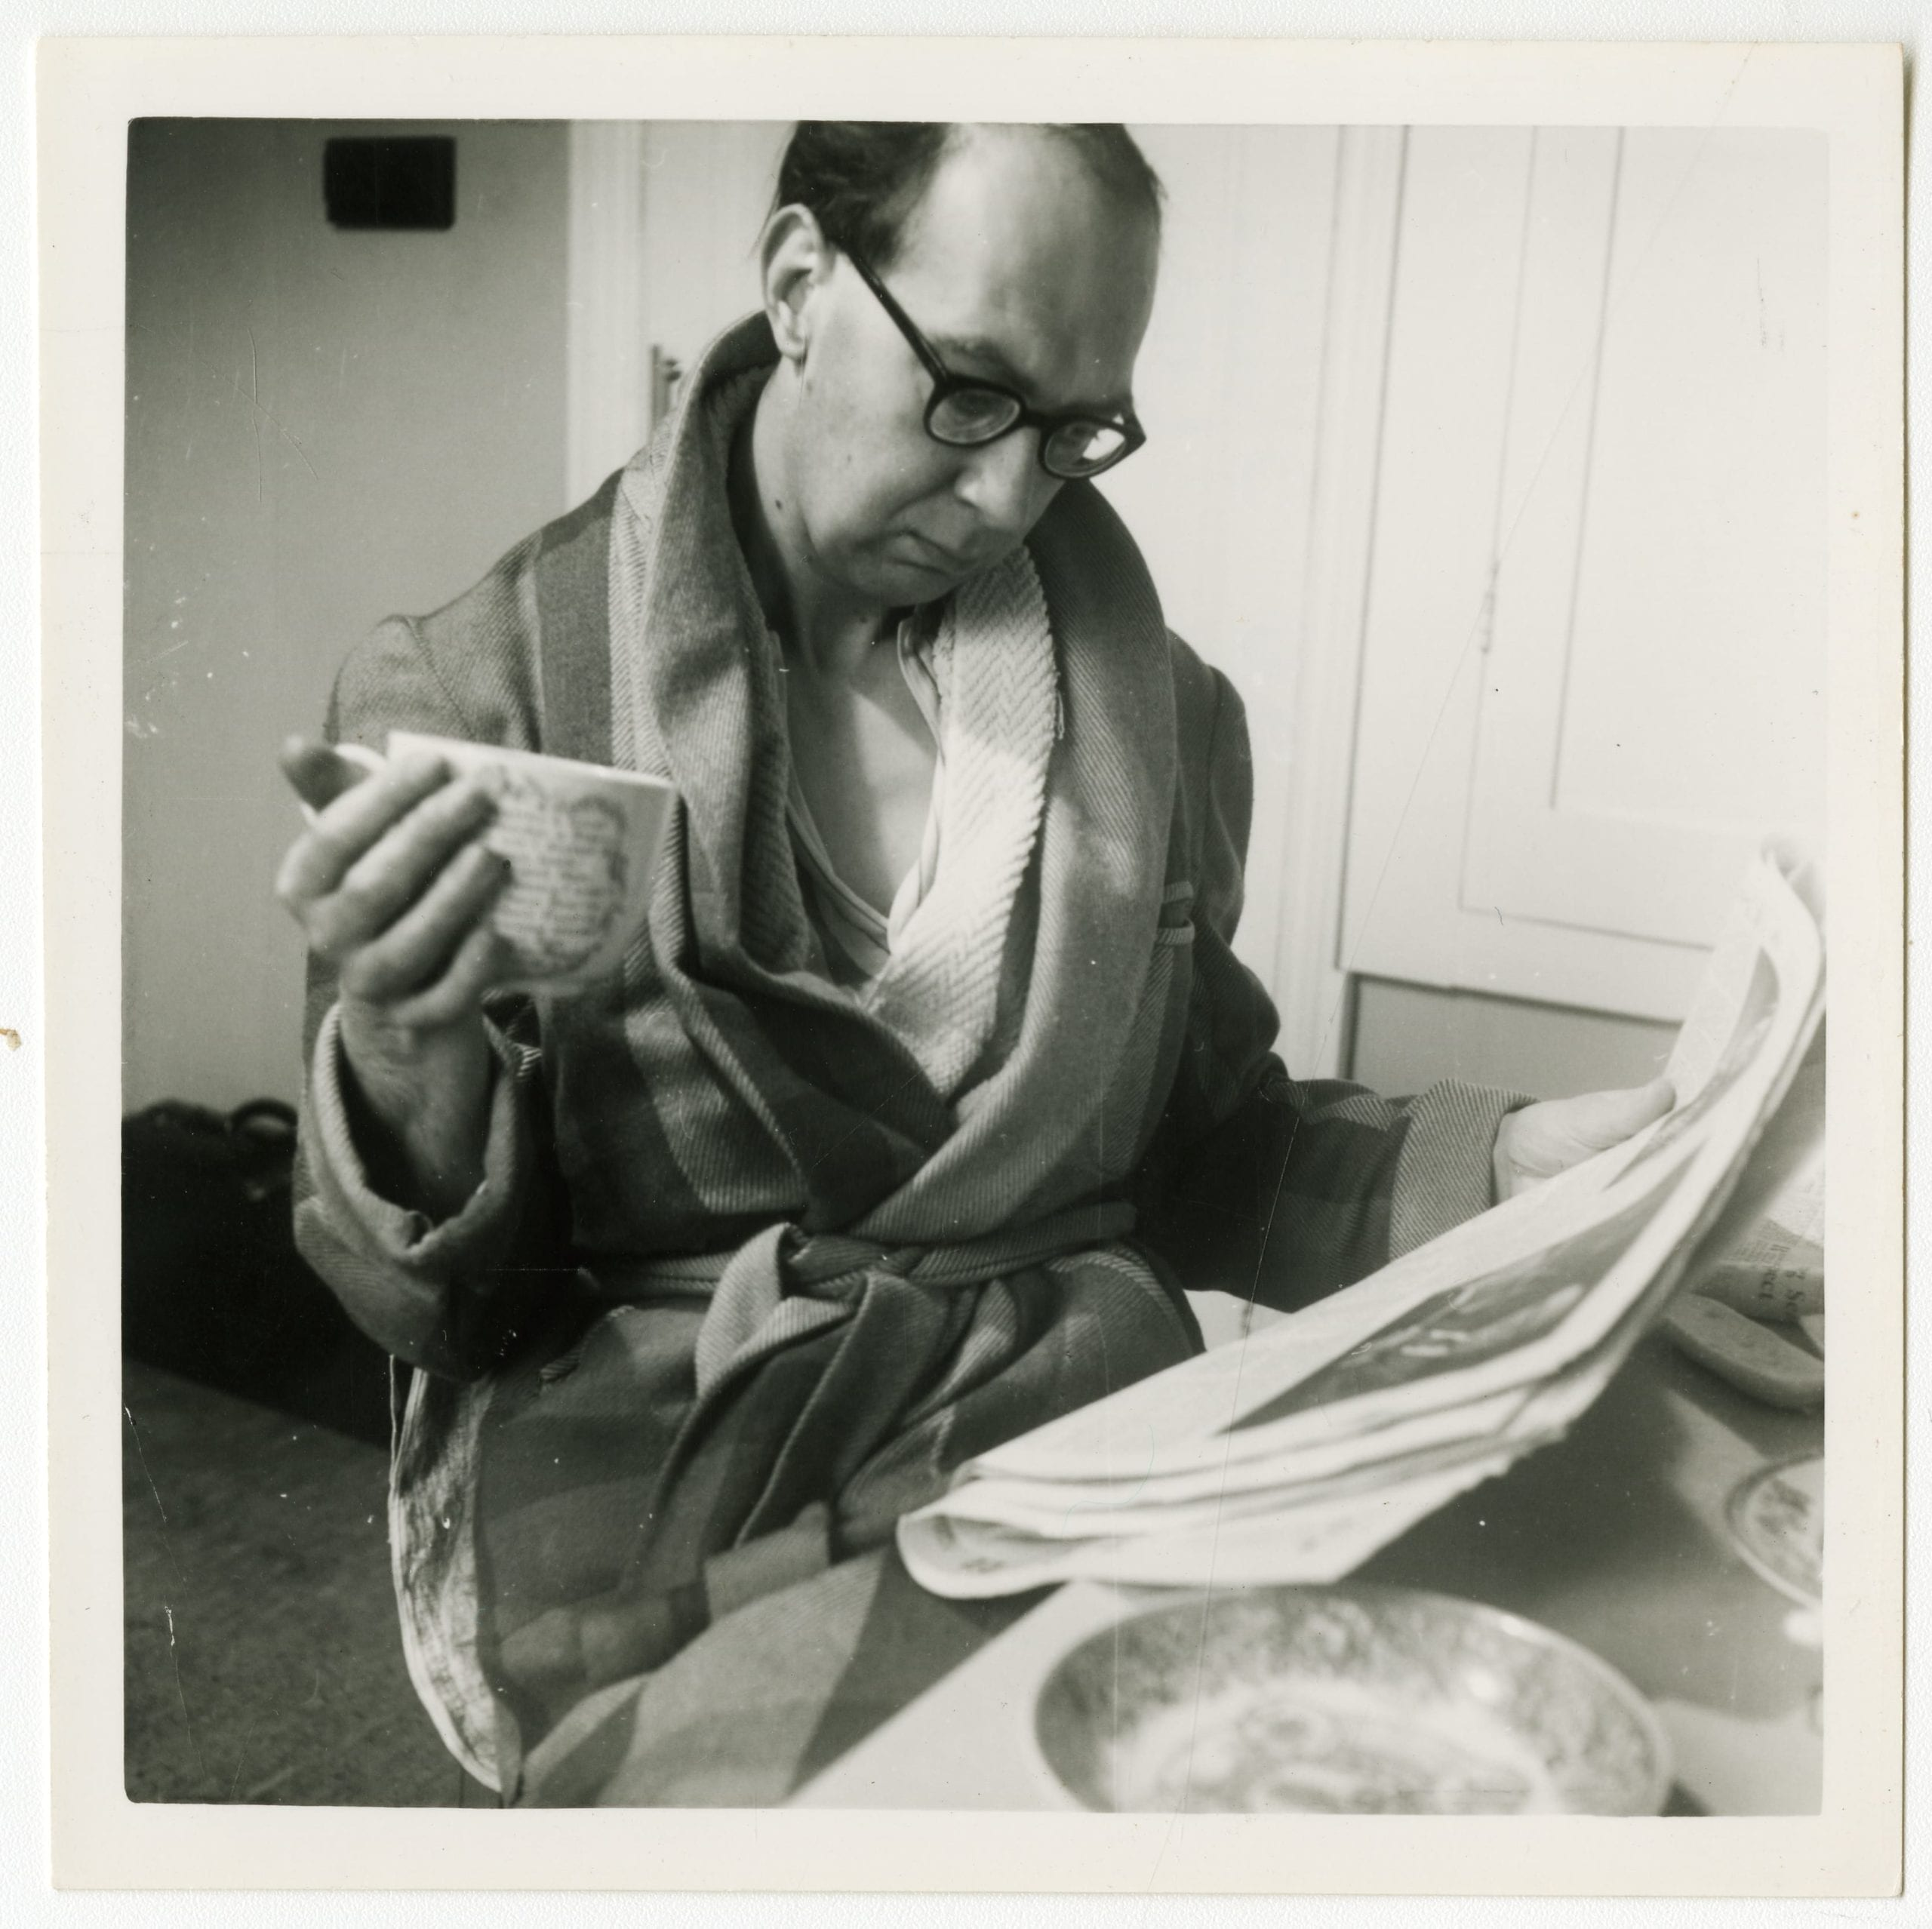 The Importance of Elsewhere pg194b pic (c) The Estate of Philip Larkin